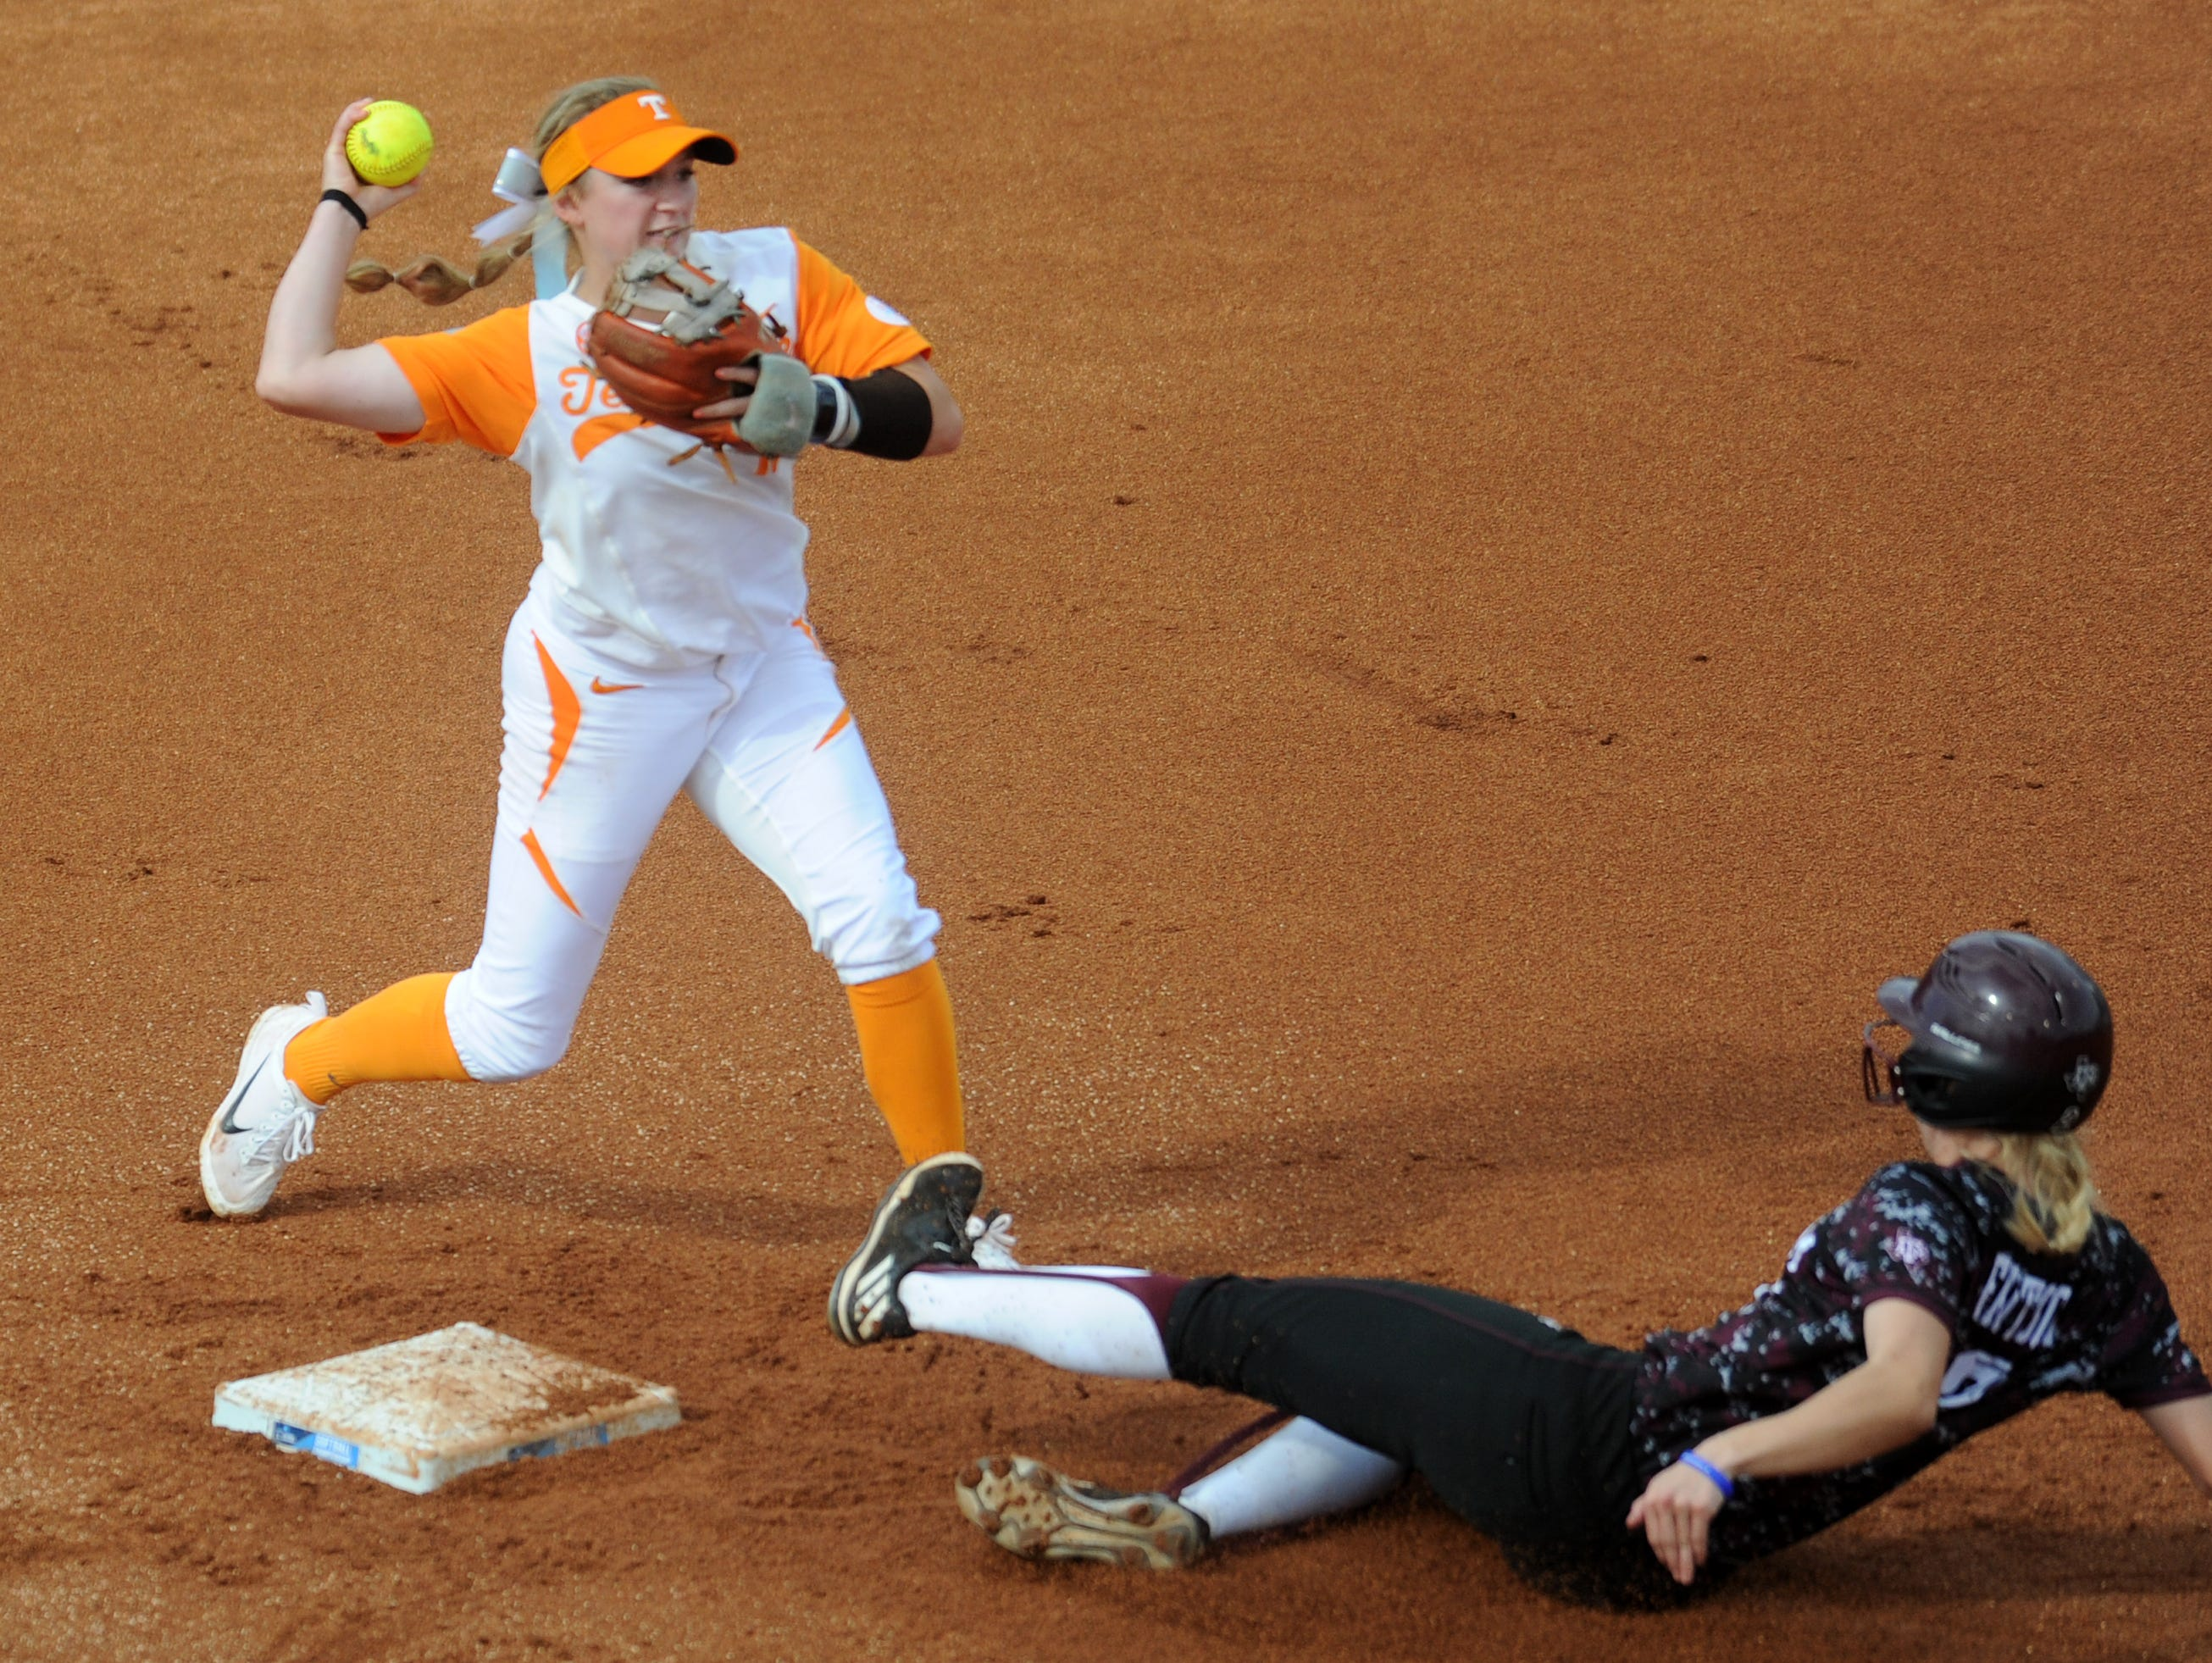 Tennessee's Aubrey Leach (10) makes a throw to first for a successful double play during an NCAA Super Regional game between Tennessee and Texas A&M at Sherri Parker Lee Stadium on Sunday, May 28, 2017. Texas A&M defeated Tennessee 5-3, and will head to Oklahoma City for the NCAA Women's College World Series.